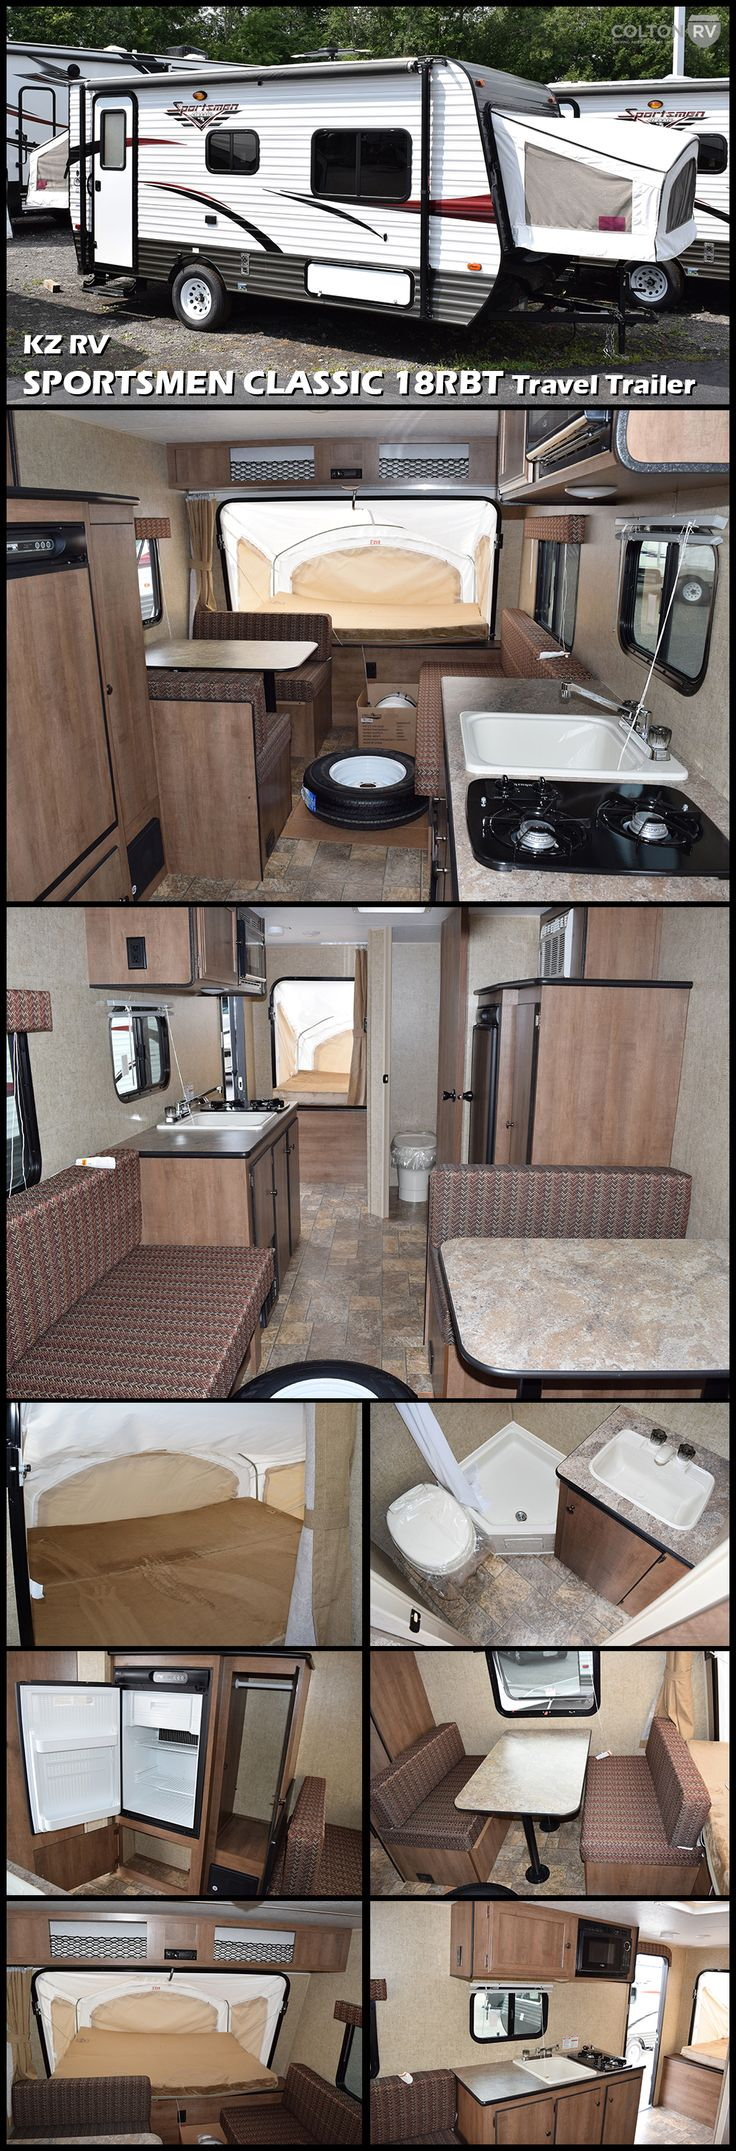 2017 KZ RV SPORTSMEN CLASSIC 18RBT ultra lightweight travel trailer features expandable foldout bunkends, which offer the ambience of tent camping with the security of solid walls and locking doors. Expandables provide additional living and sleeping space without adding towing length and weight. Sportsmen Classic provides all the amenities of home in a lightweight, easy to tow package.